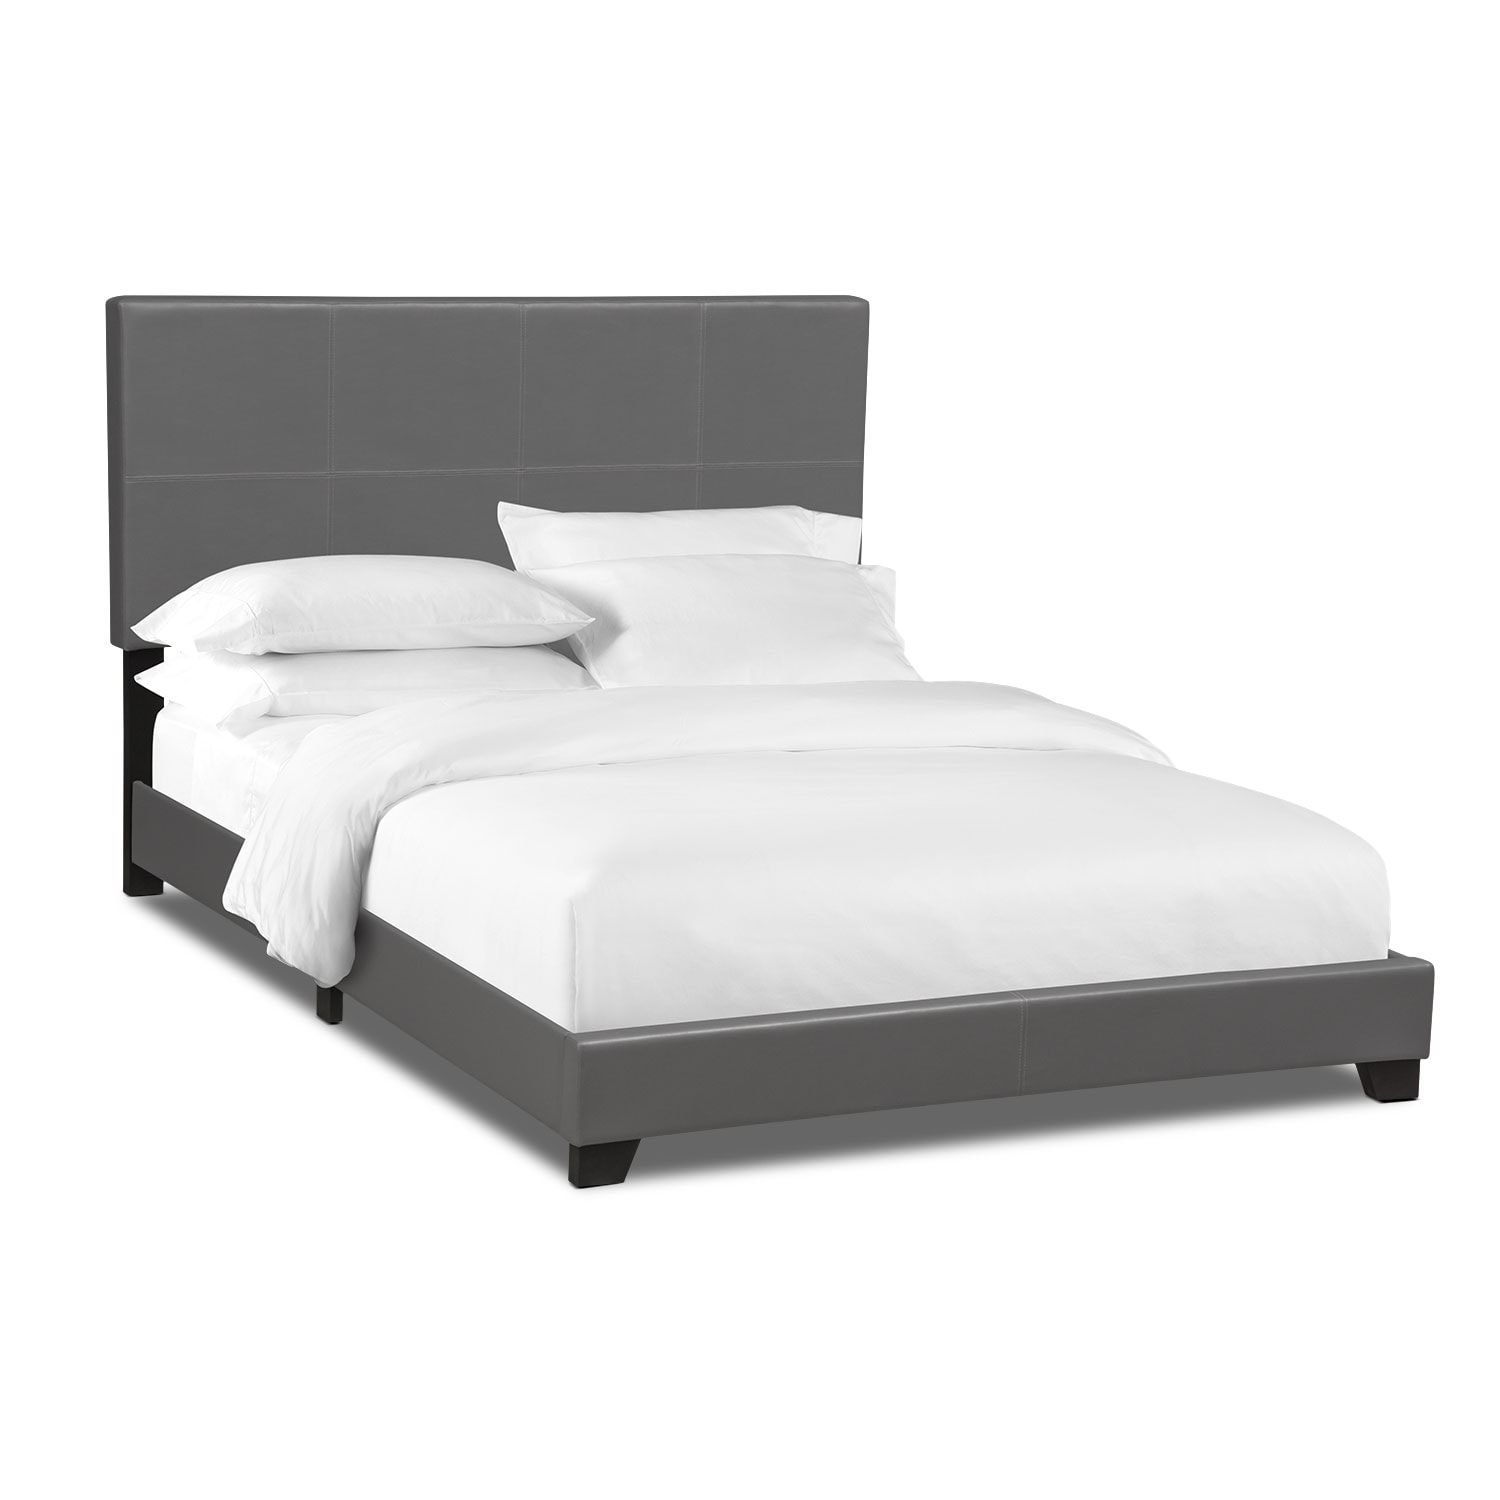 Loft Queen Upholstered Bed - Gray